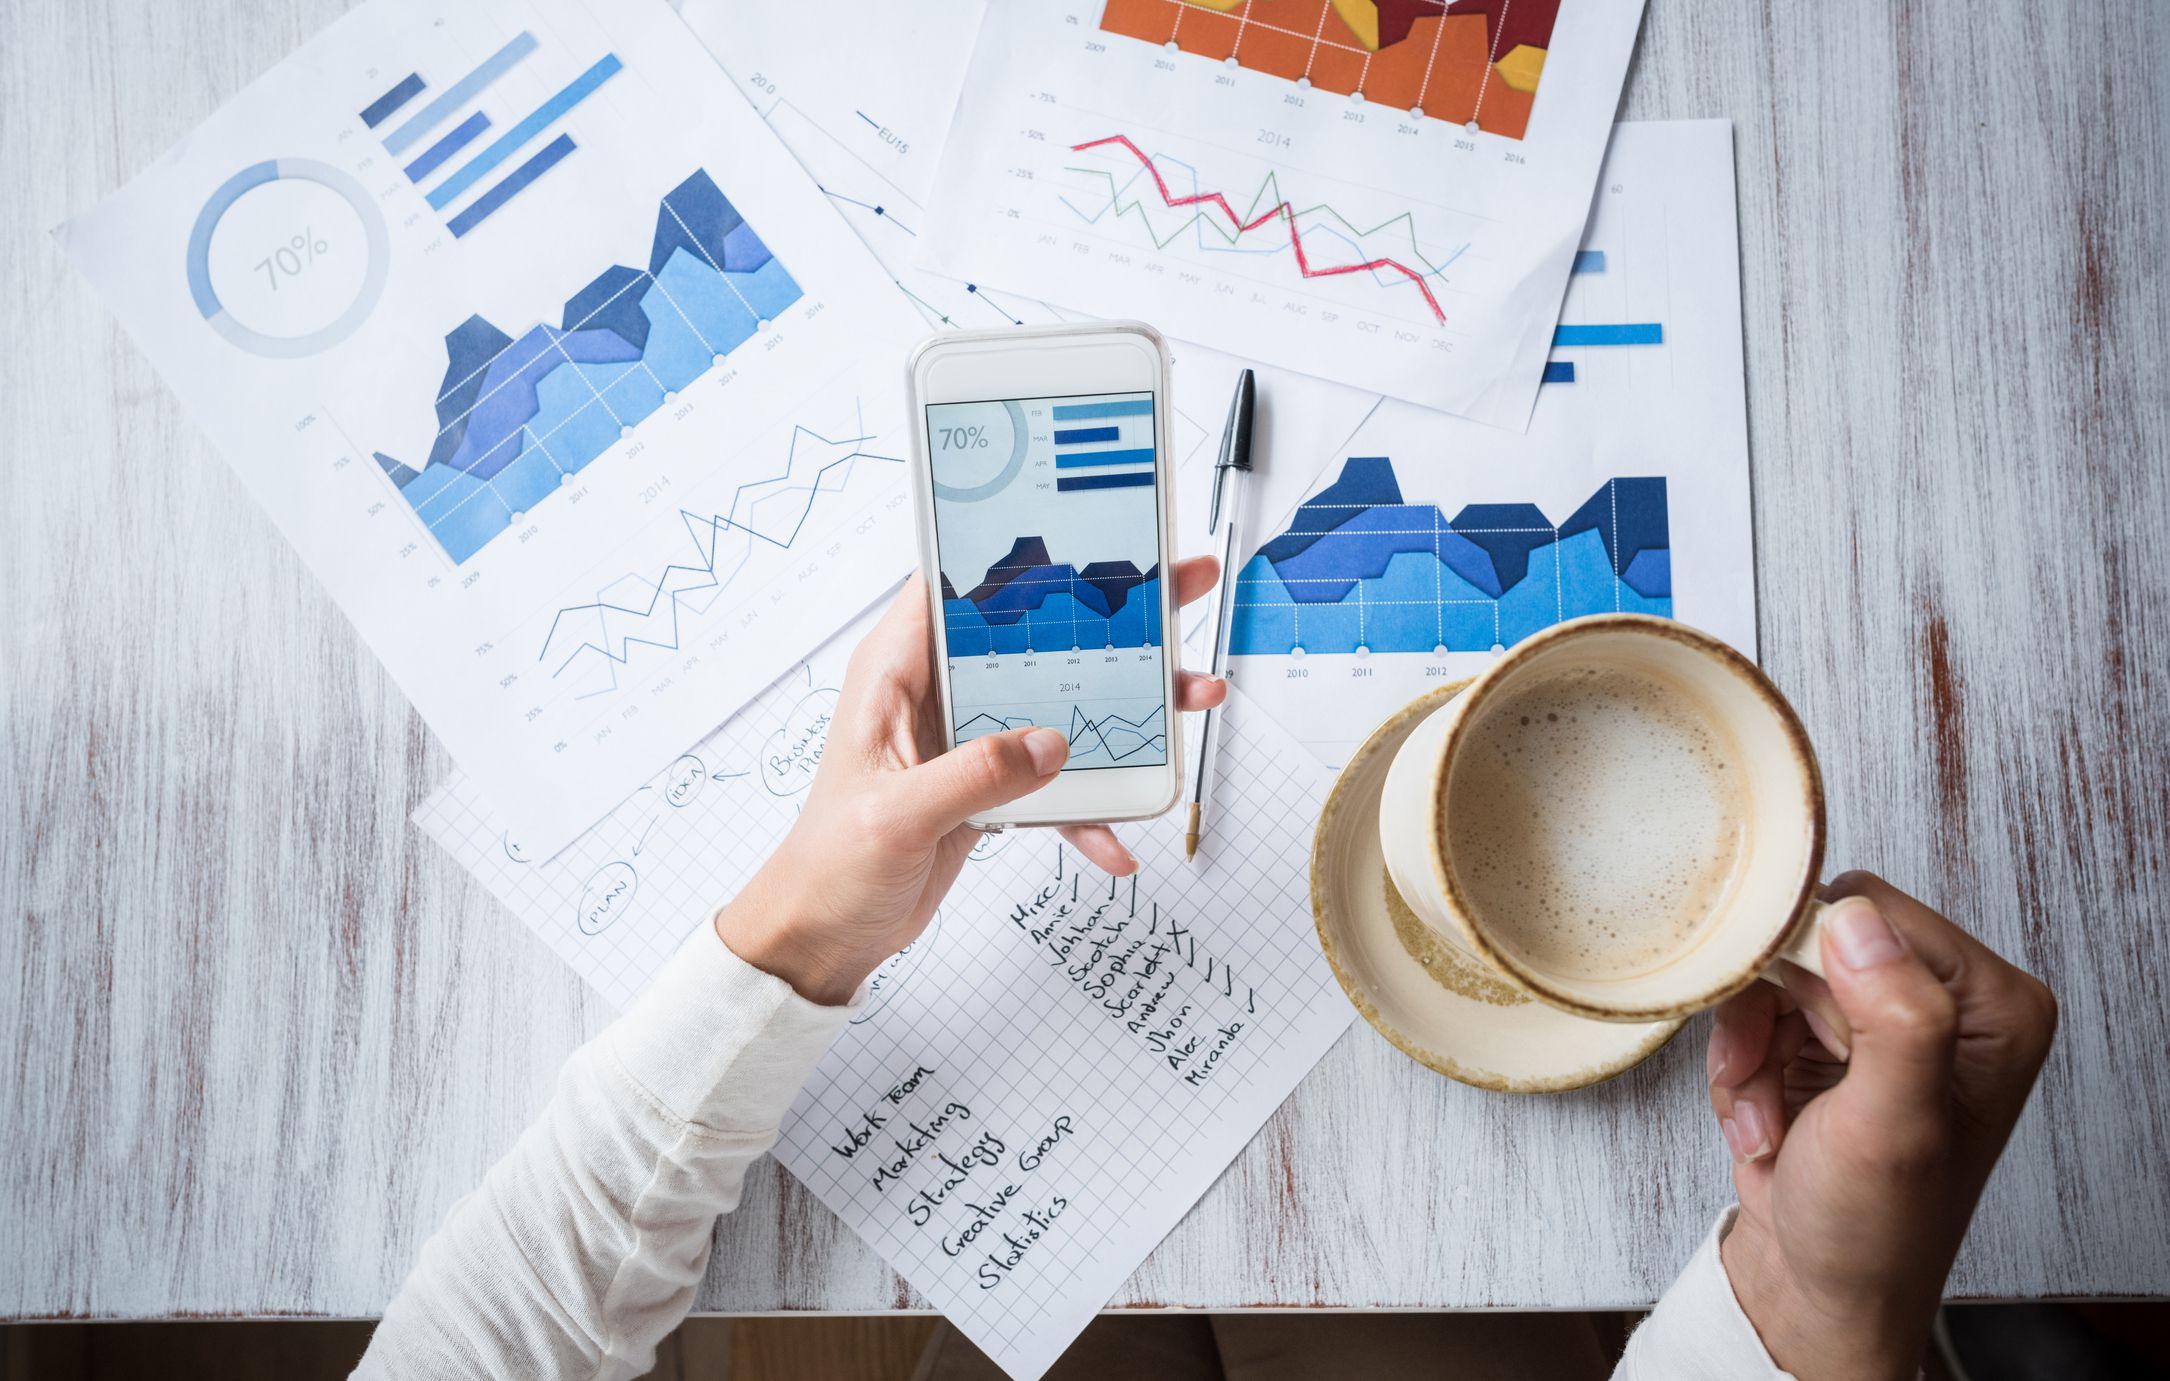 12 Apps to Help With Home Business Taxes